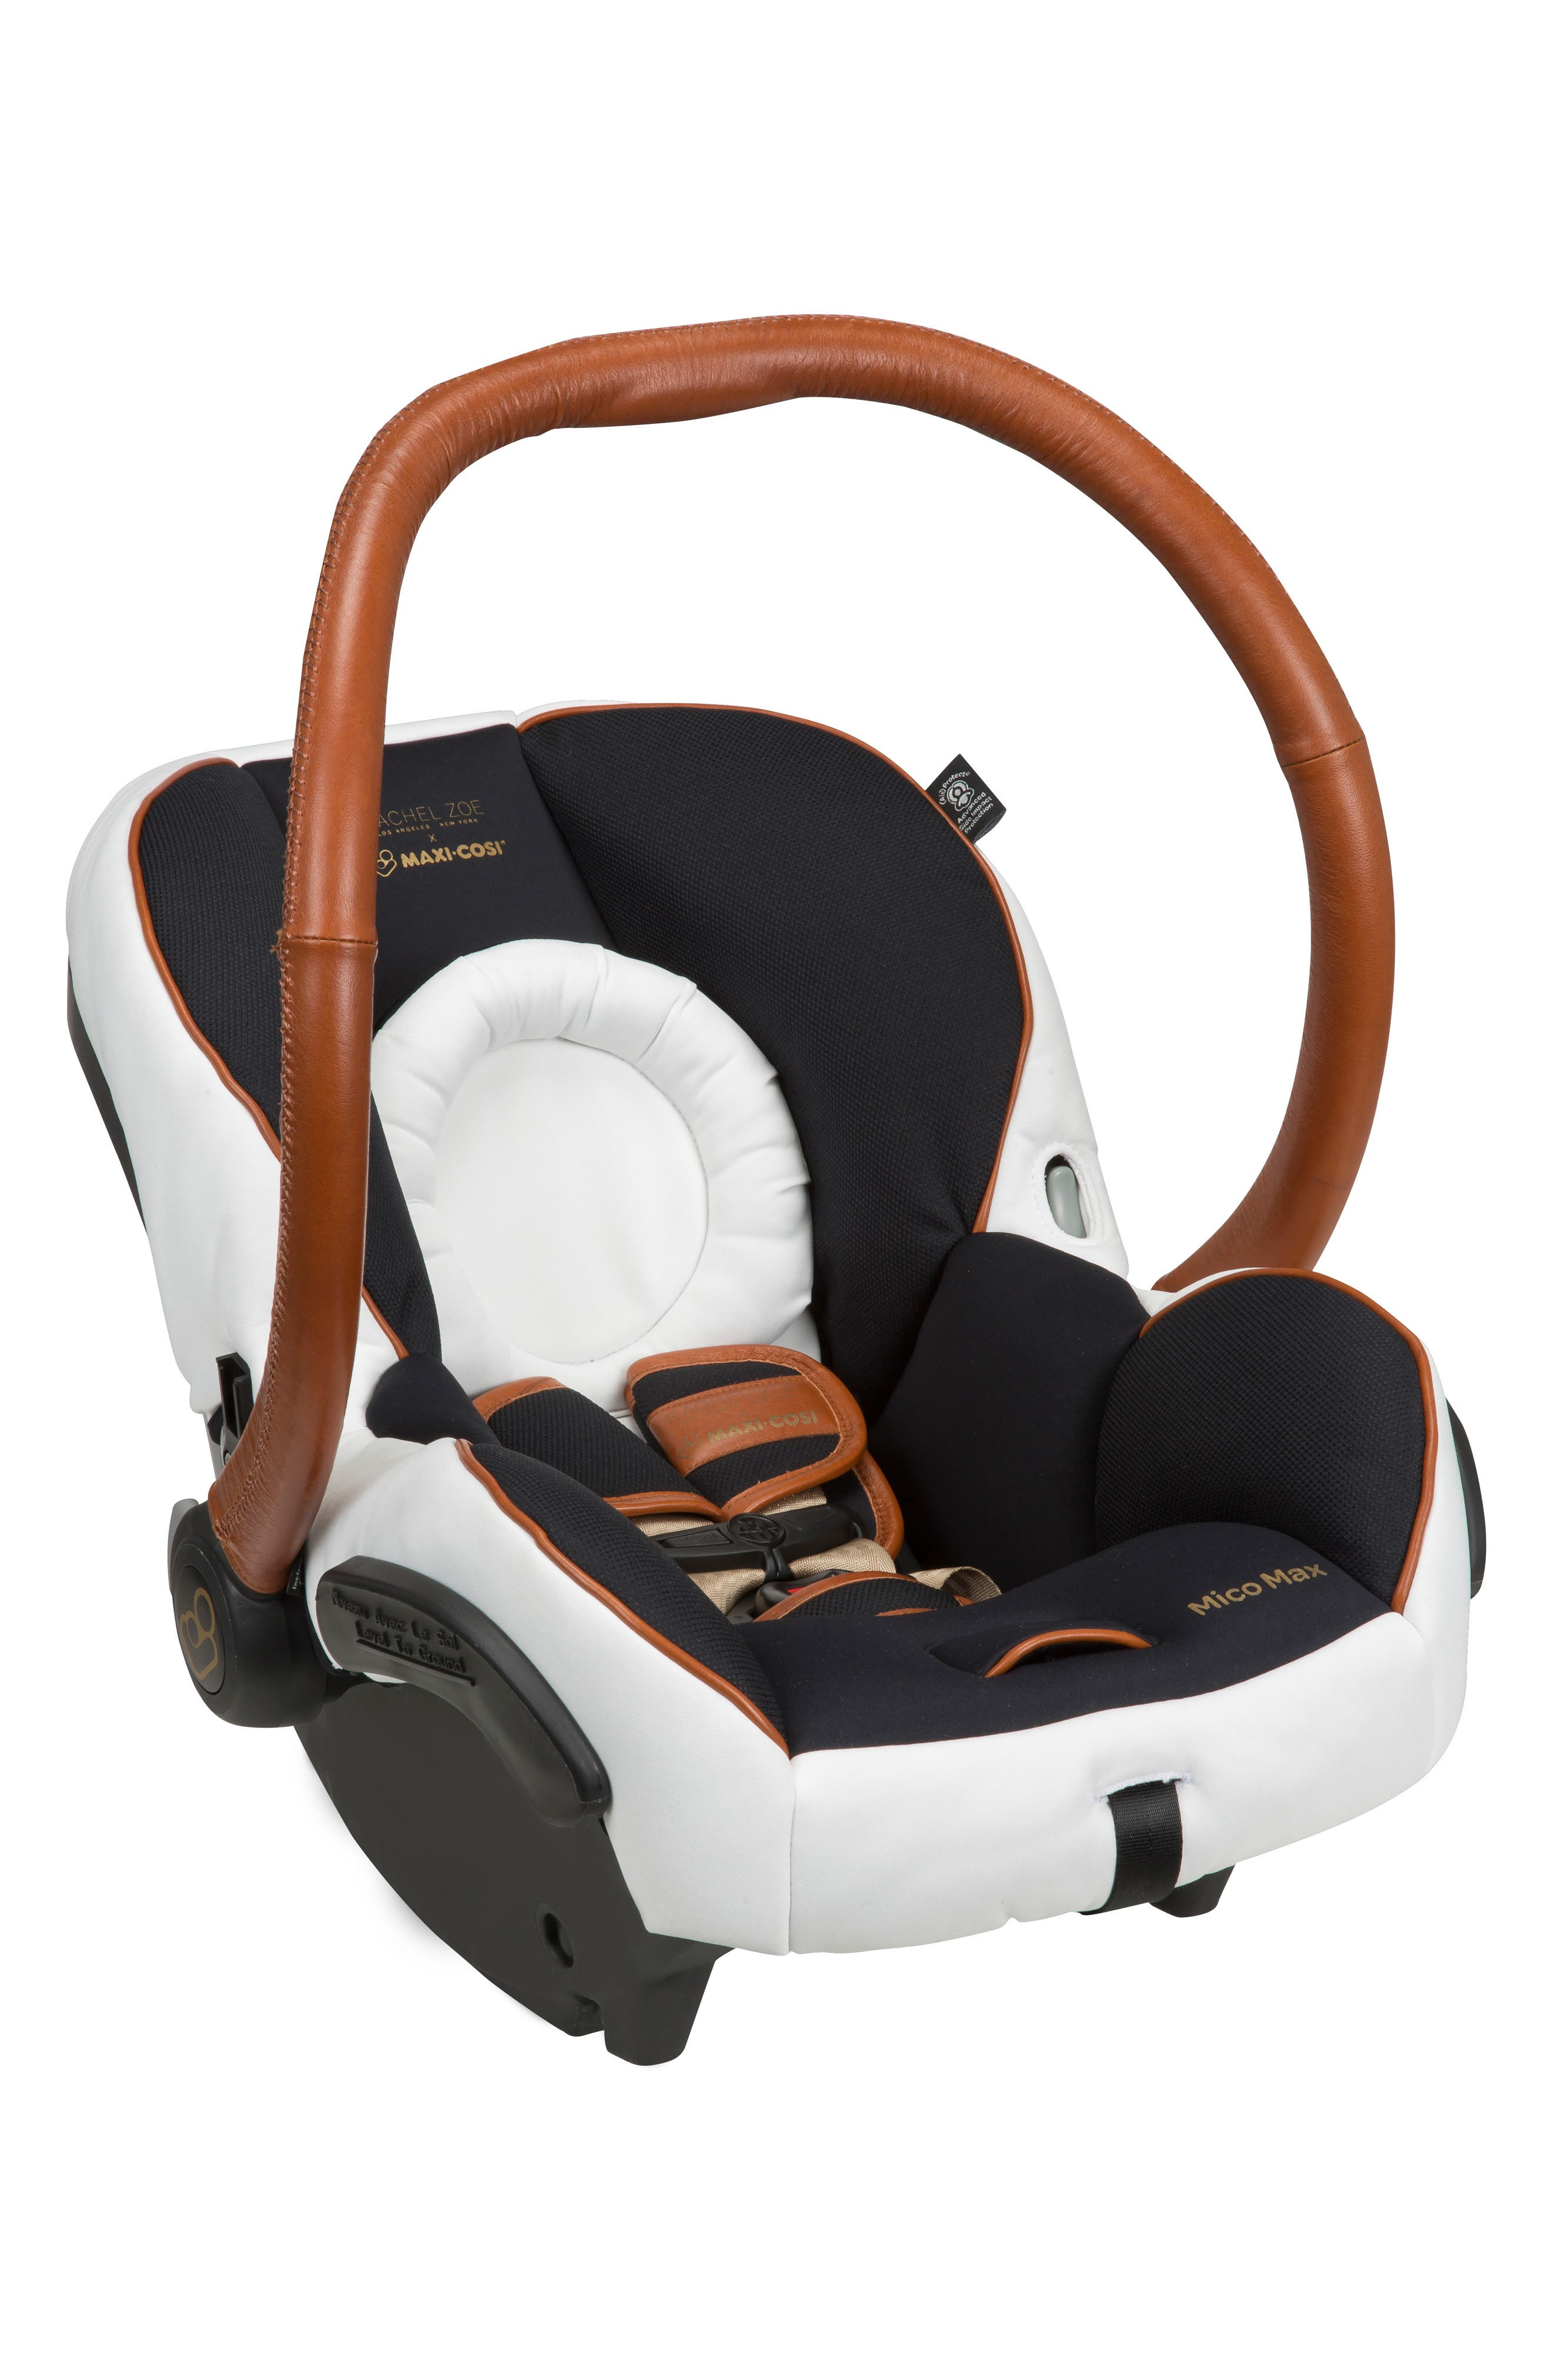 x Rachel Zoe Mico Max 30 - Special Edition Infant Car Seat,                             Alternate thumbnail 5, color,                             005